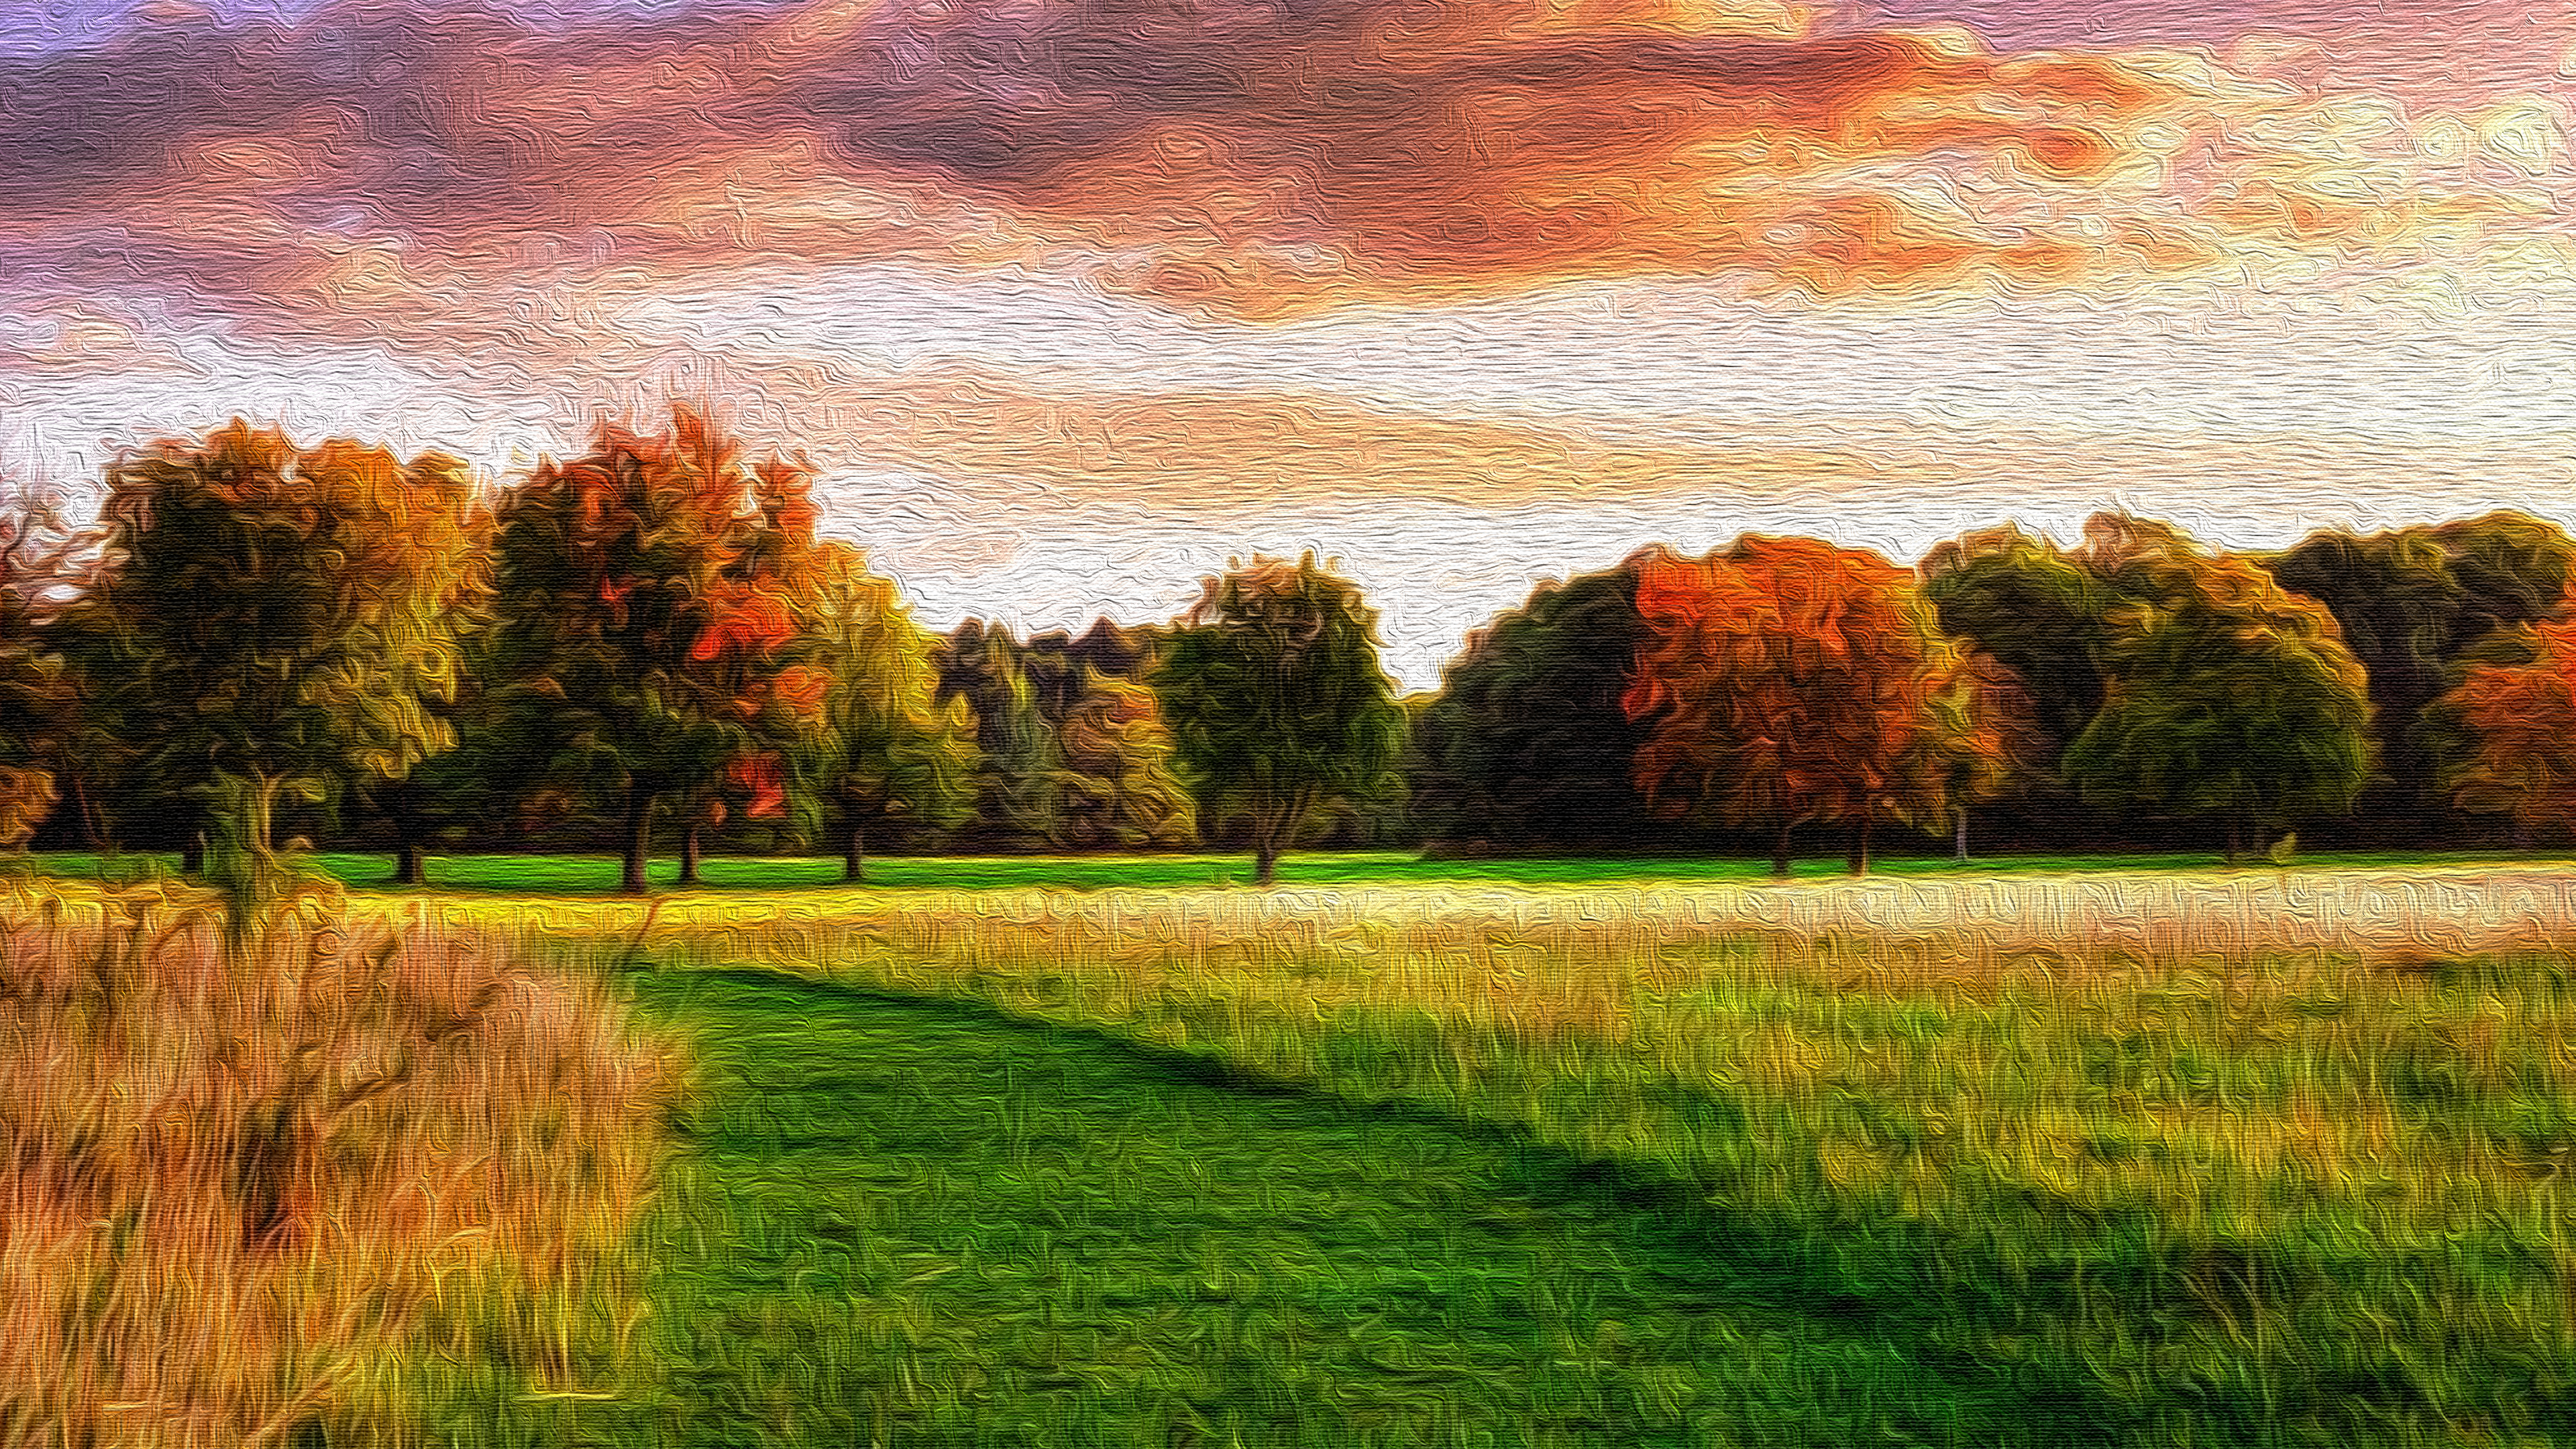 Late Summer Oil On Canvas 4k Ultra Hd Wallpaper Background Image 3840x2160 Id 927536 Wallpaper Abyss